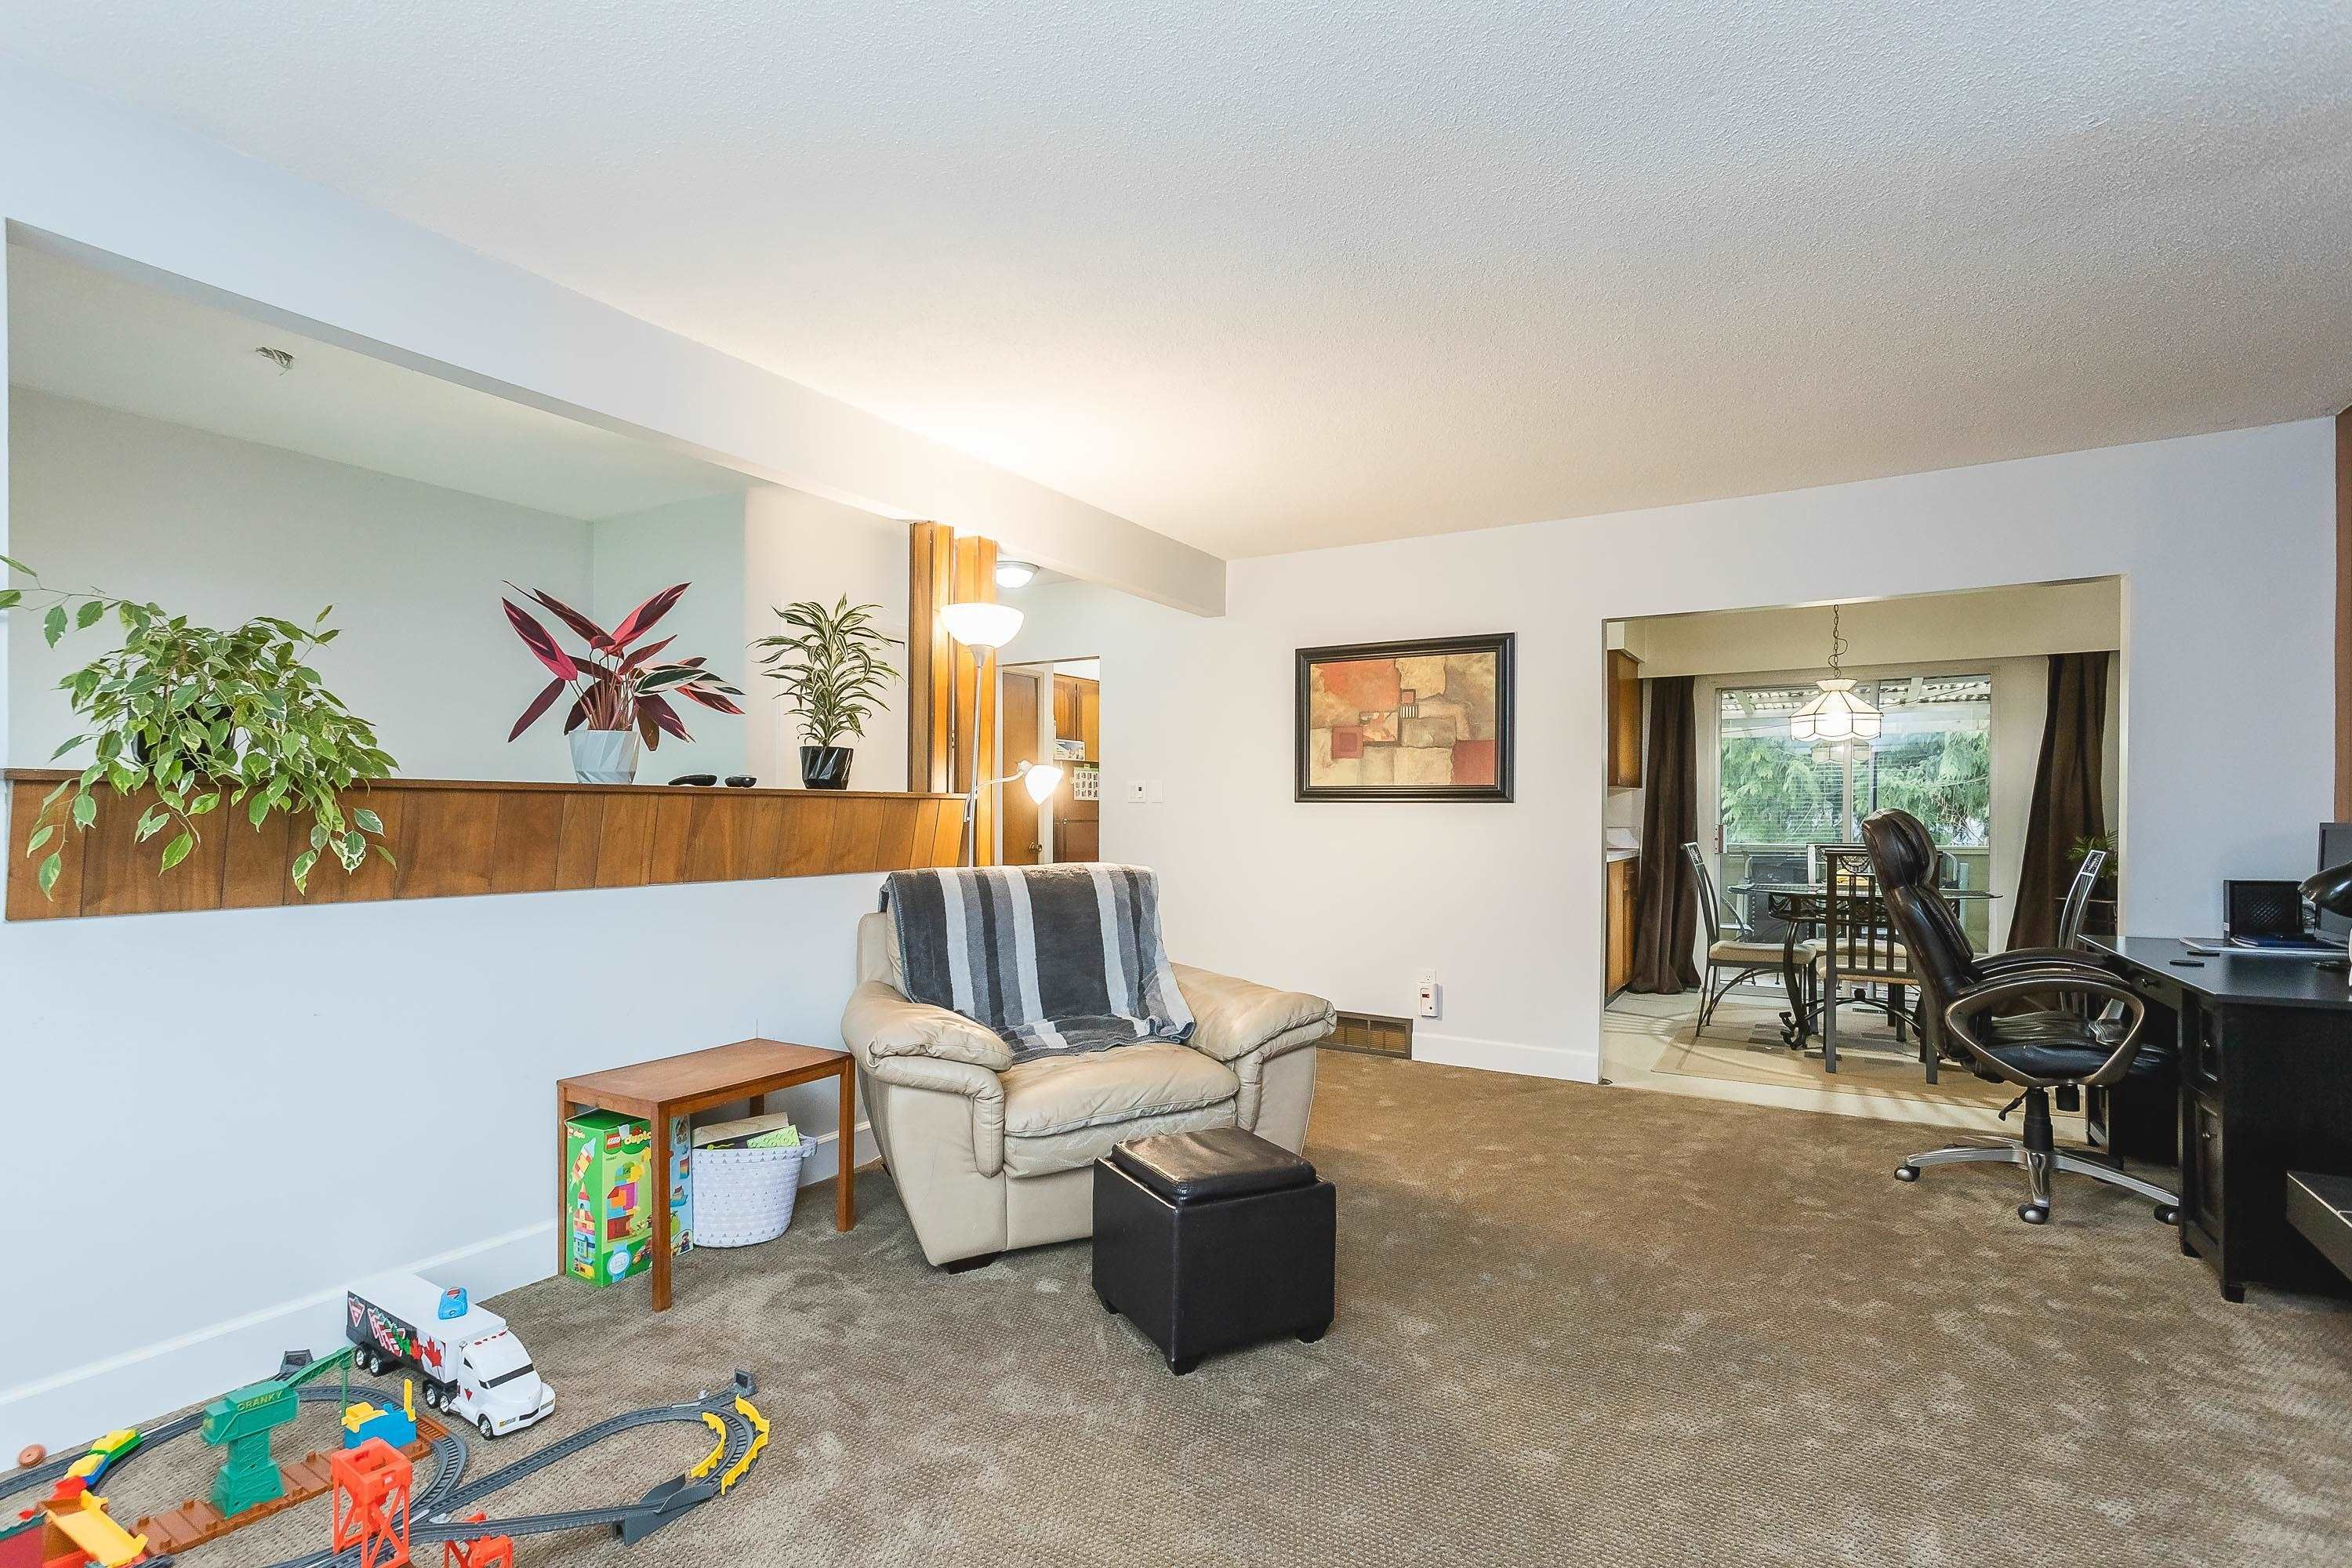 Photo 19: Photos: 3260 ULSTER Street in Port Coquitlam: Lincoln Park PQ House for sale : MLS®# R2613283